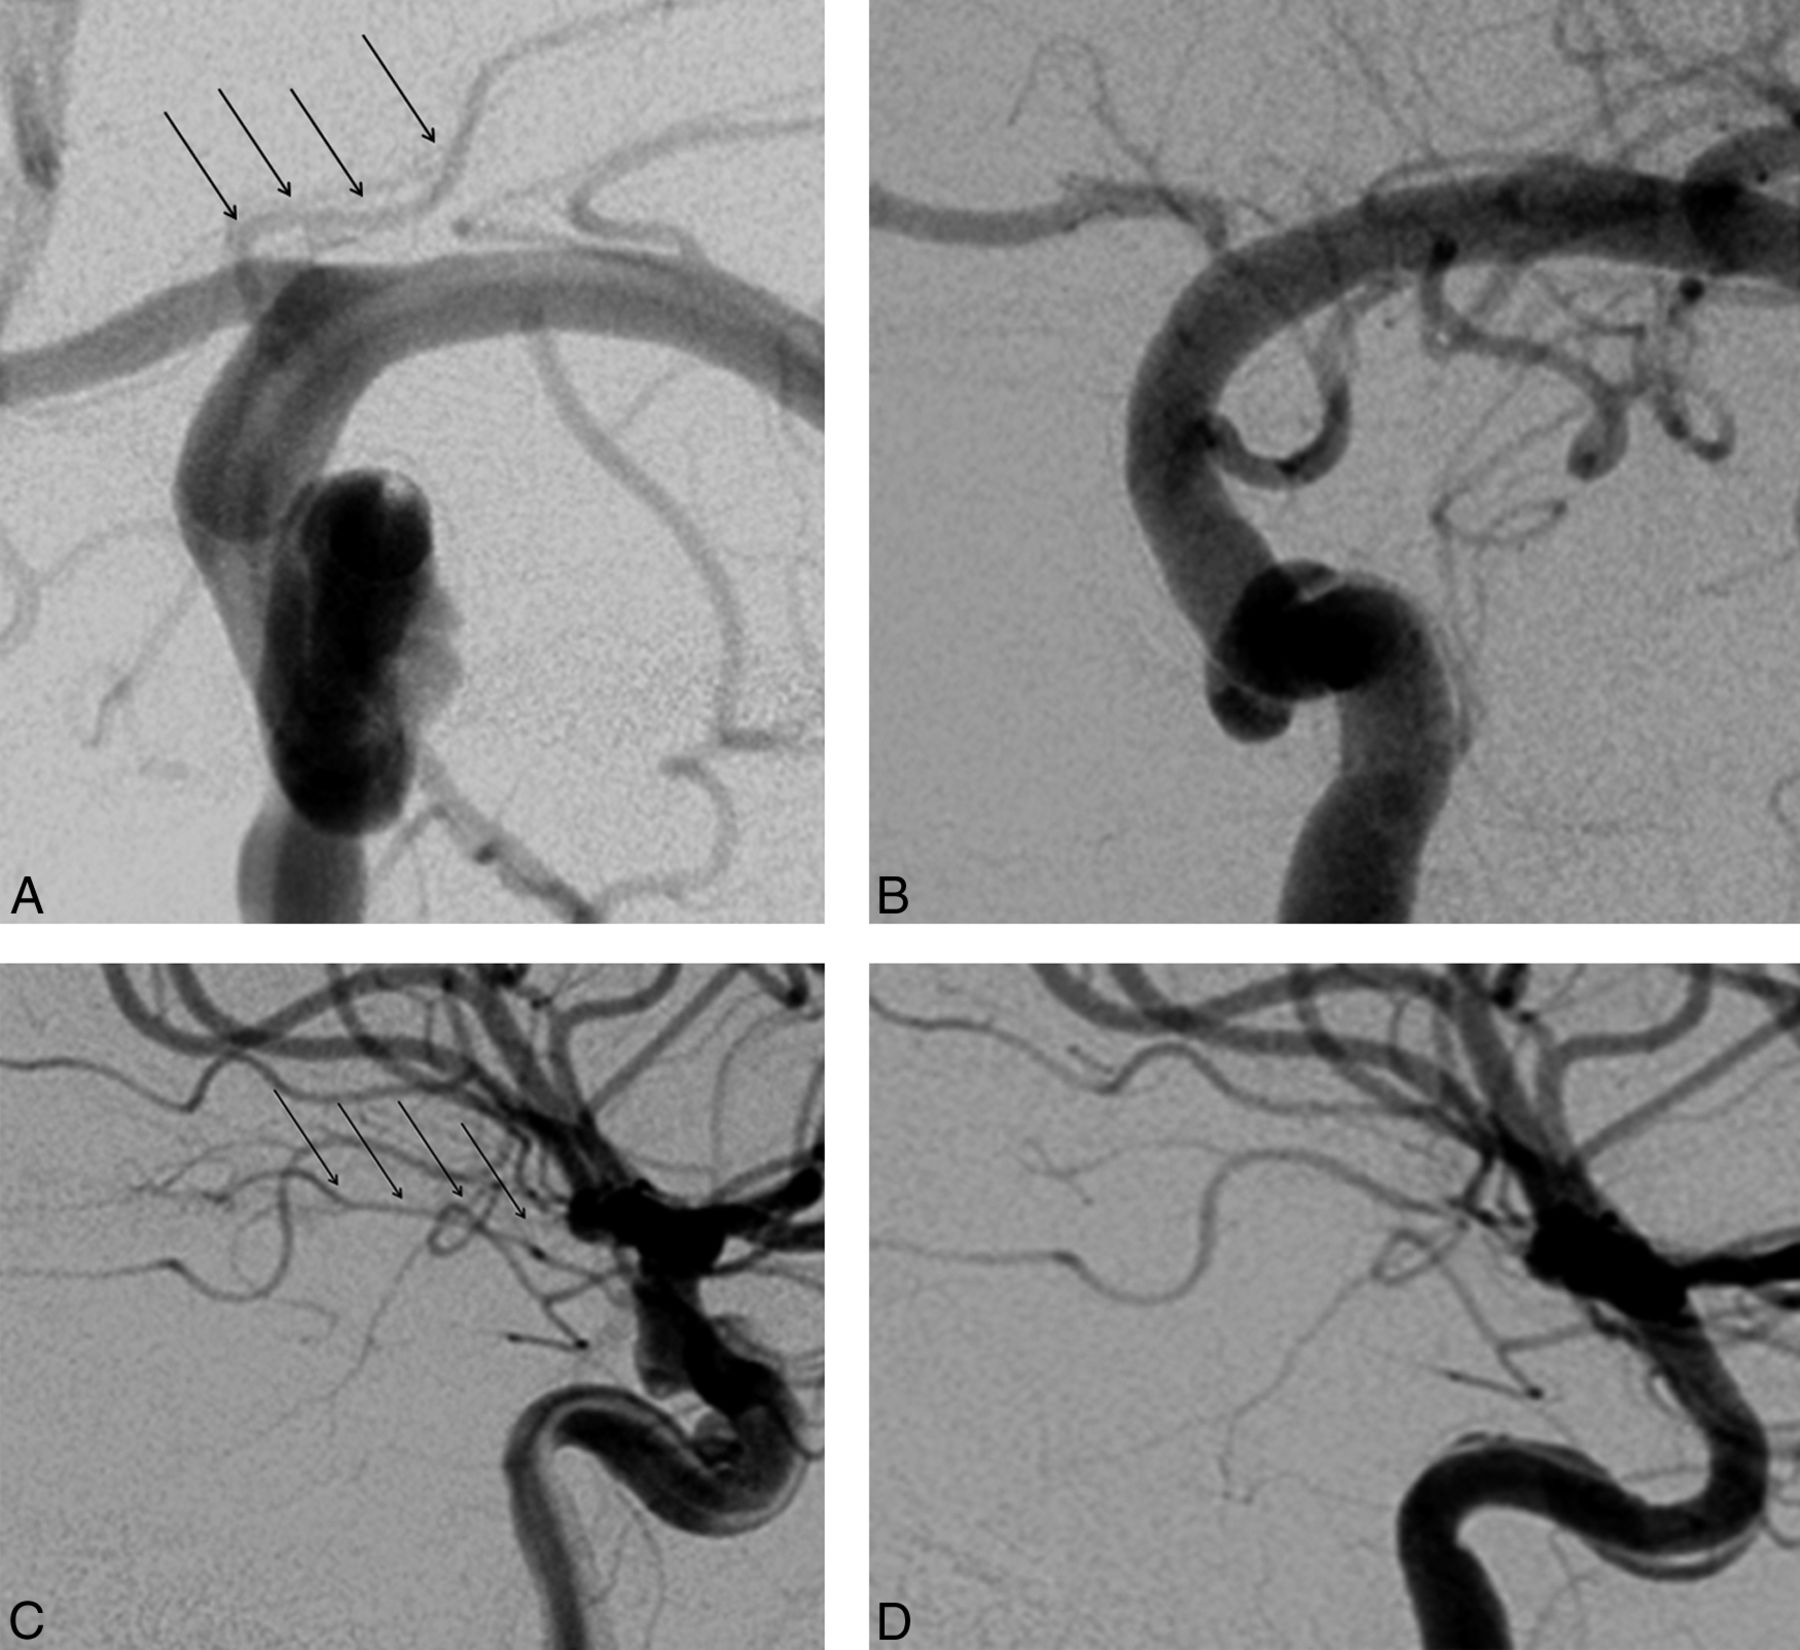 Patency Of The Anterior Choroidal Artery After Flow Diversion